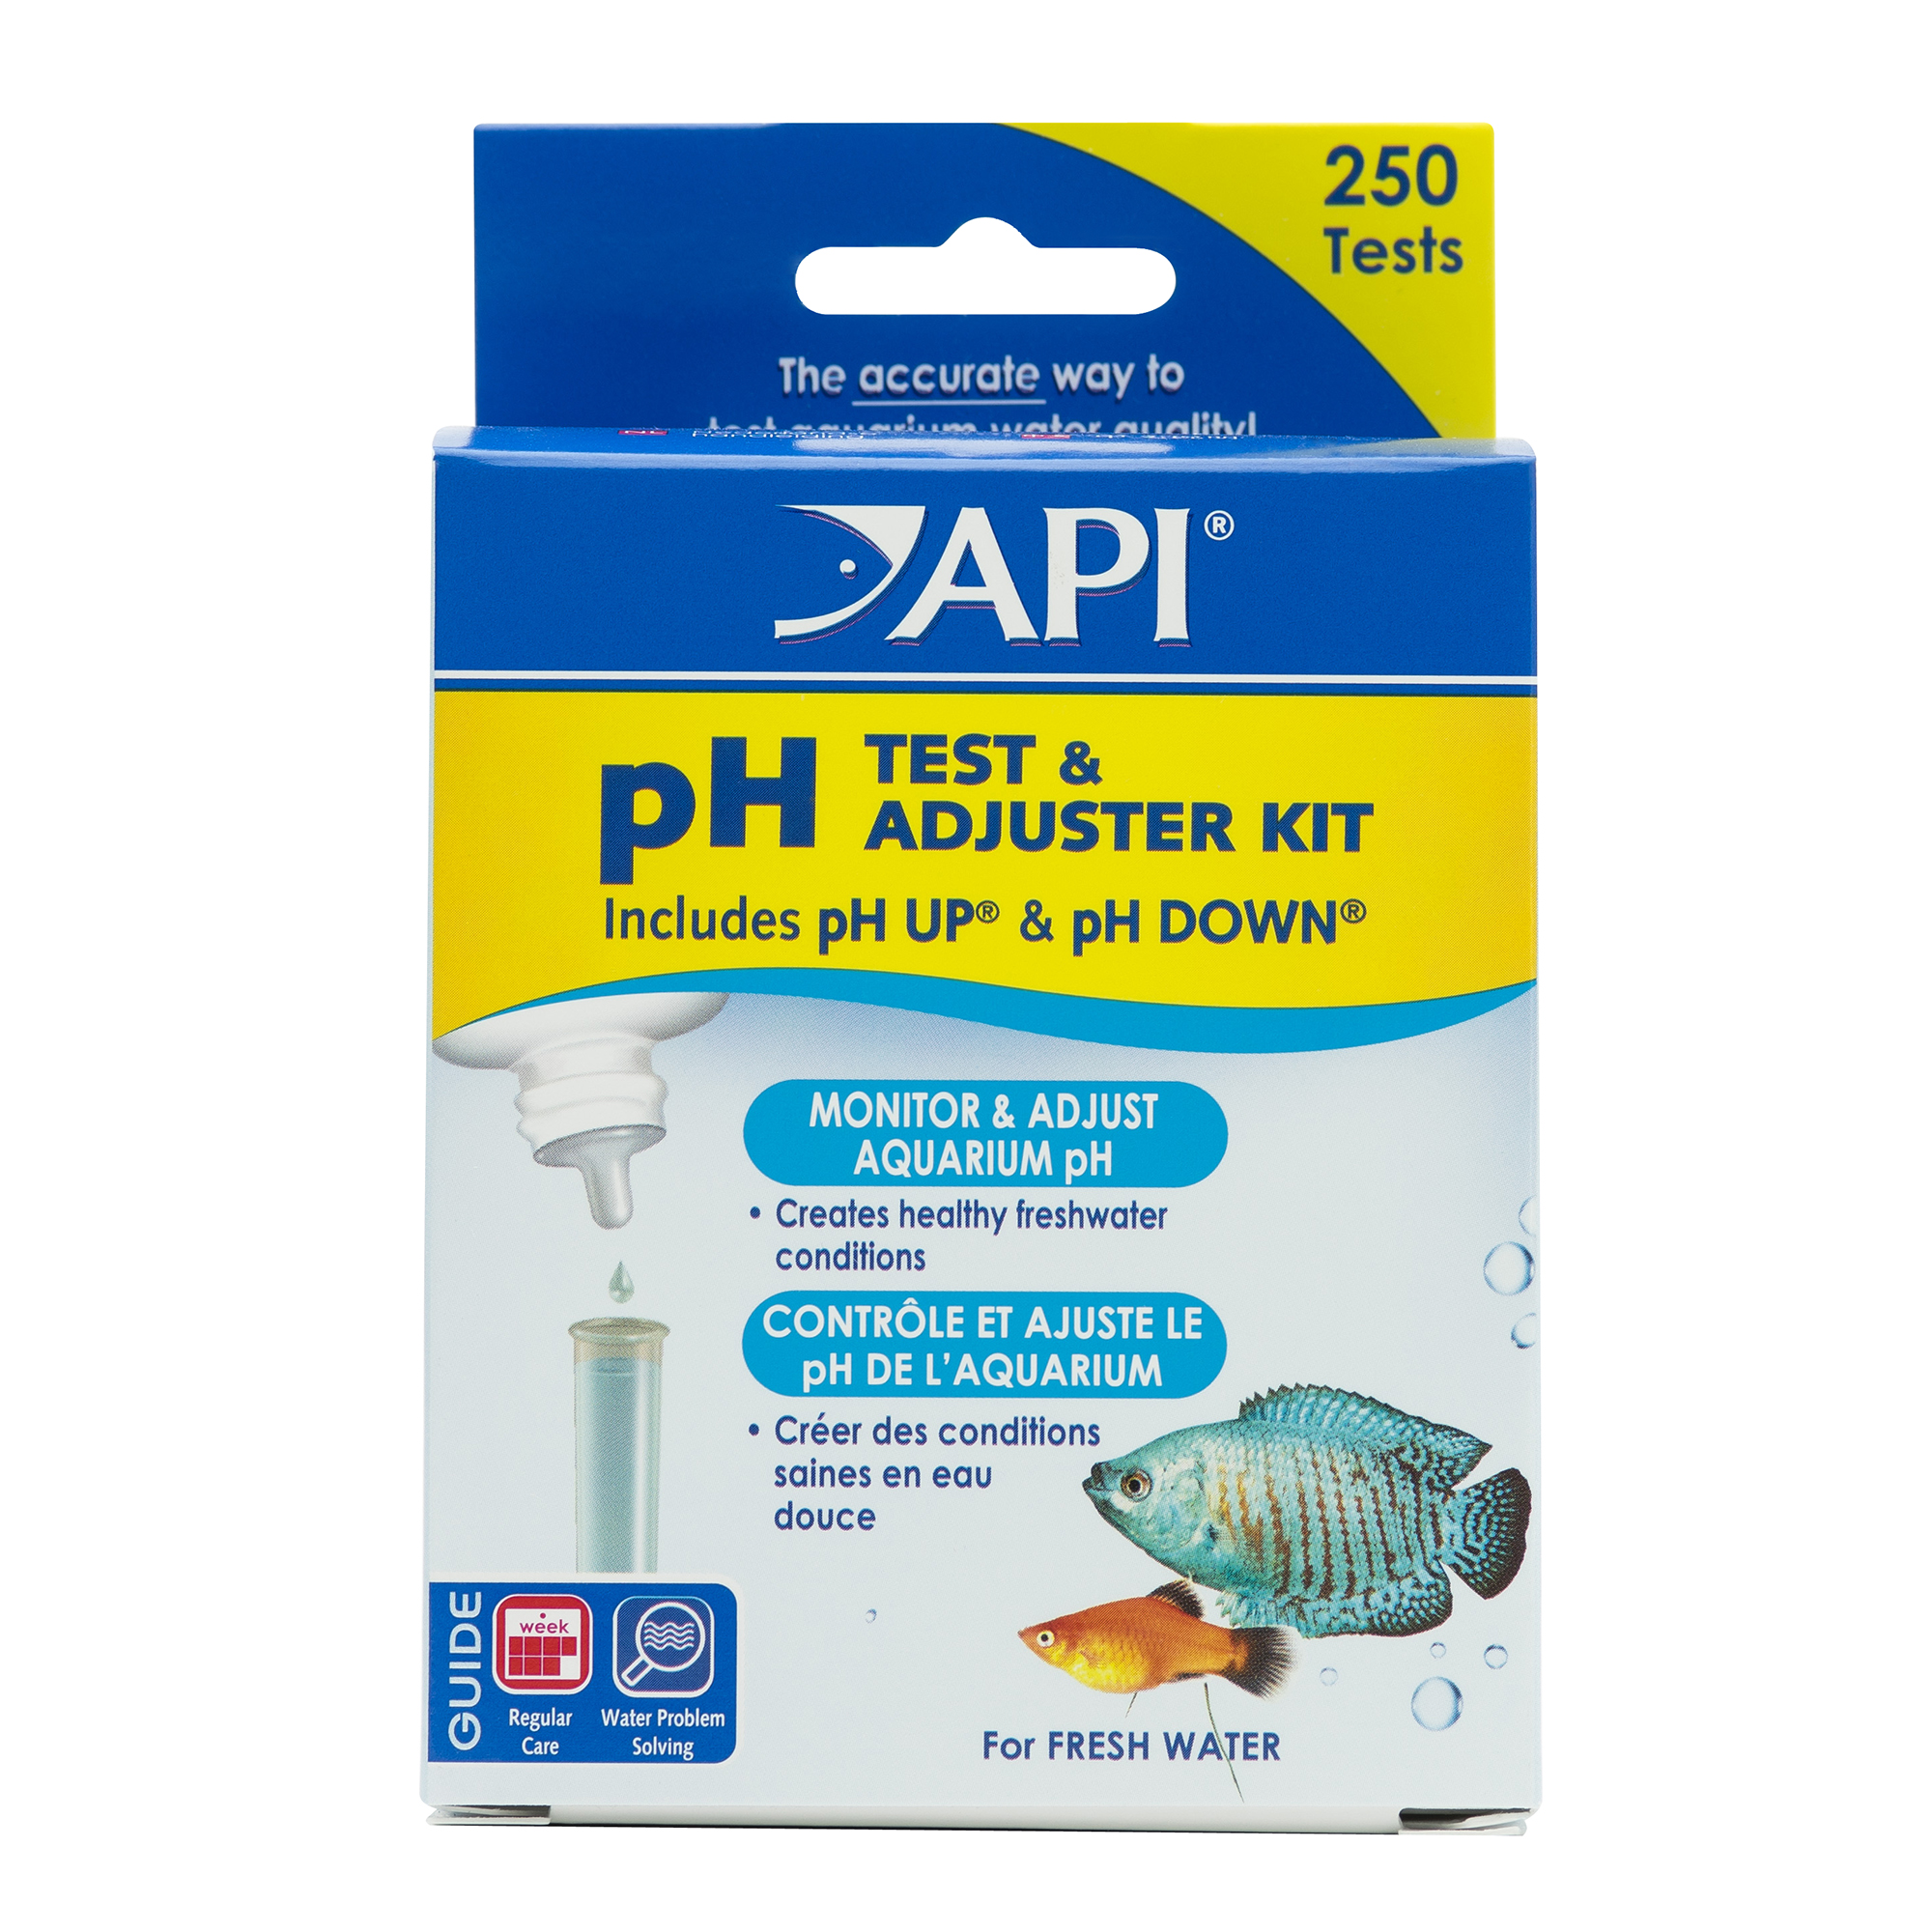 pH TEST & ADJUSTER KIT